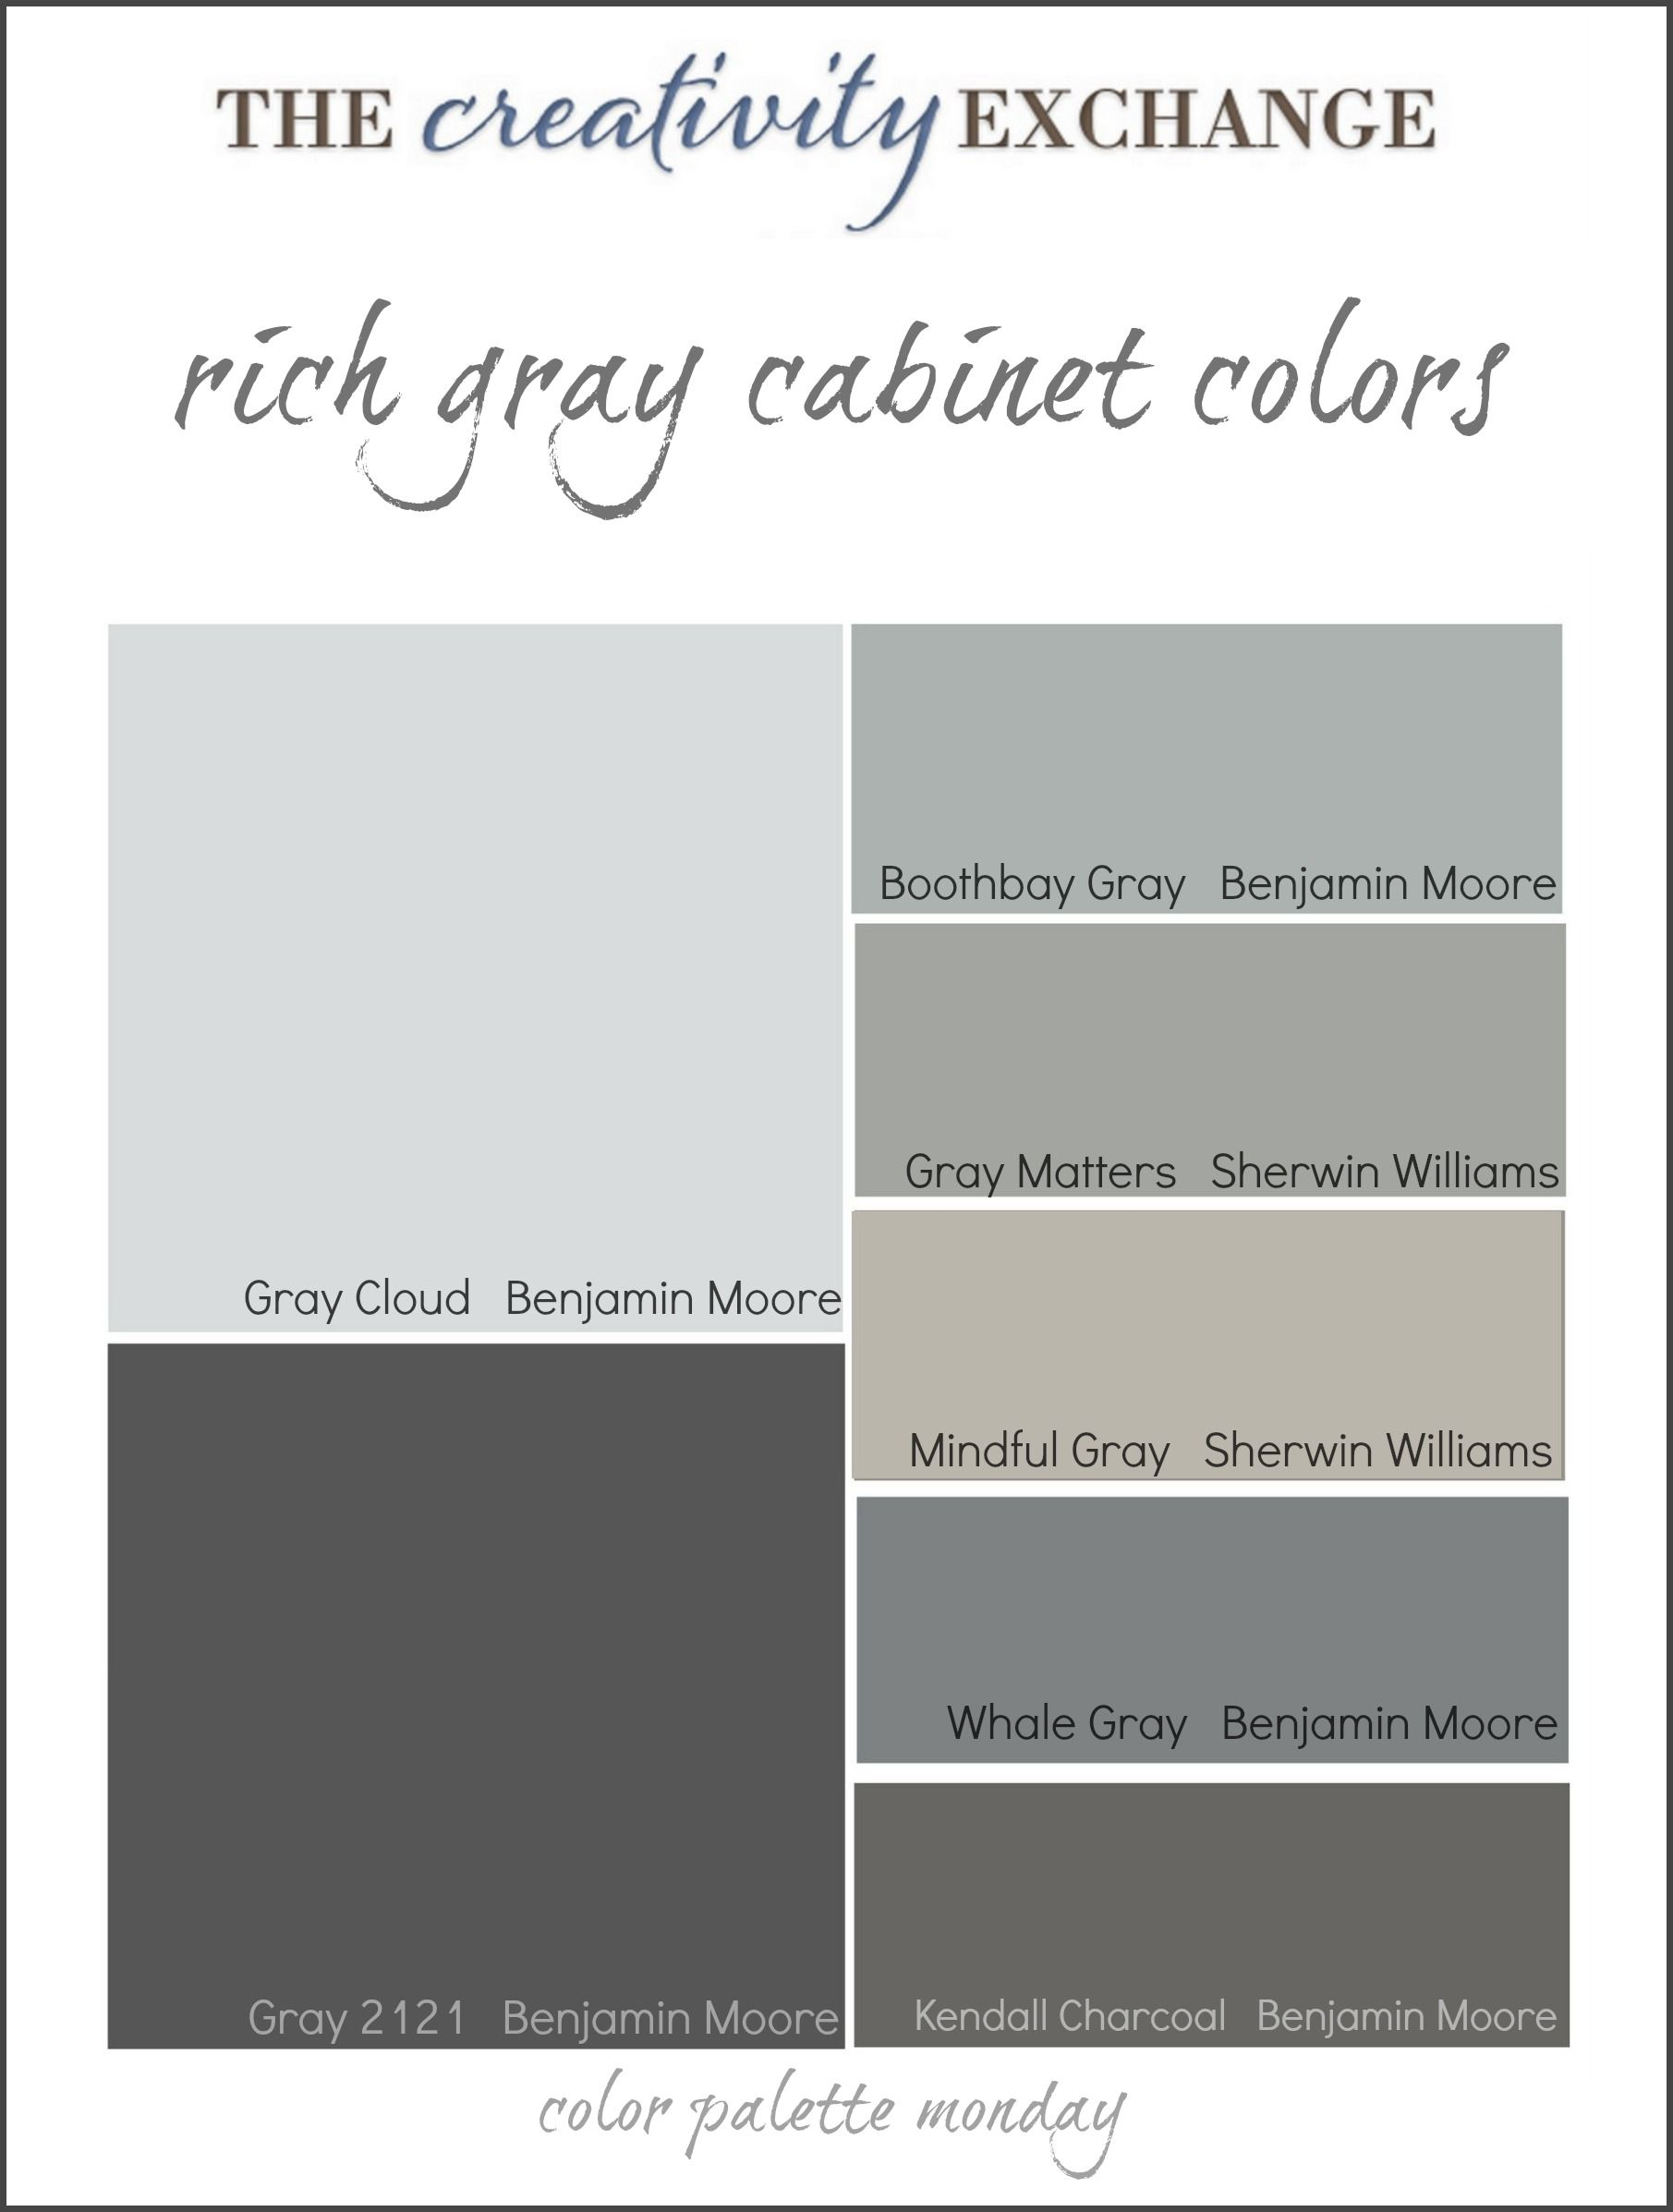 Especially Liking Mindful Gray And Kendall Charcoal From Readersu0027 Favorite Paint  Colors {Color Palette